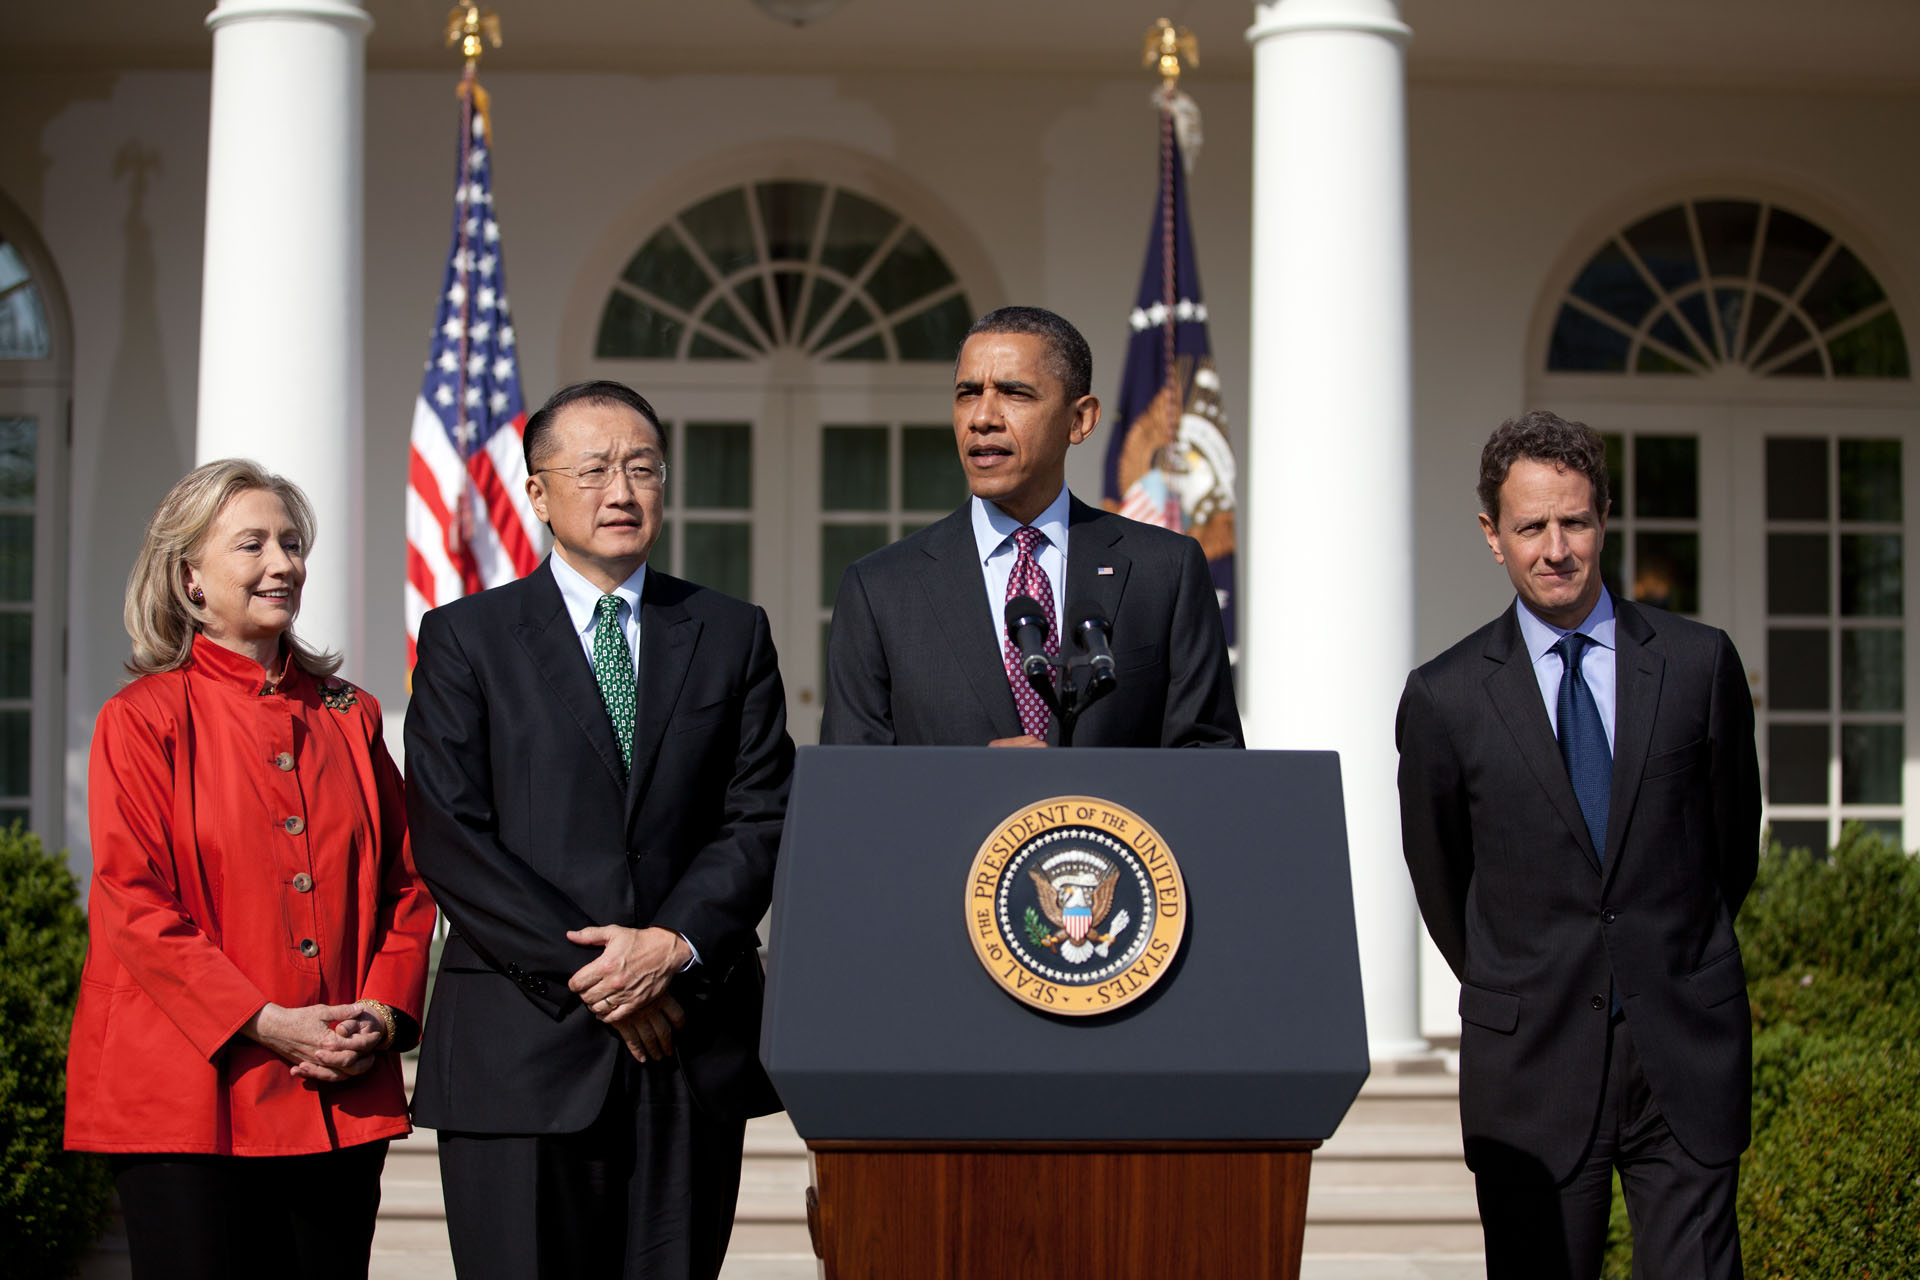 President Barack Obama announces Dr. Jim Yong Kim as his nominee to head the World Bank (March 23, 2012)